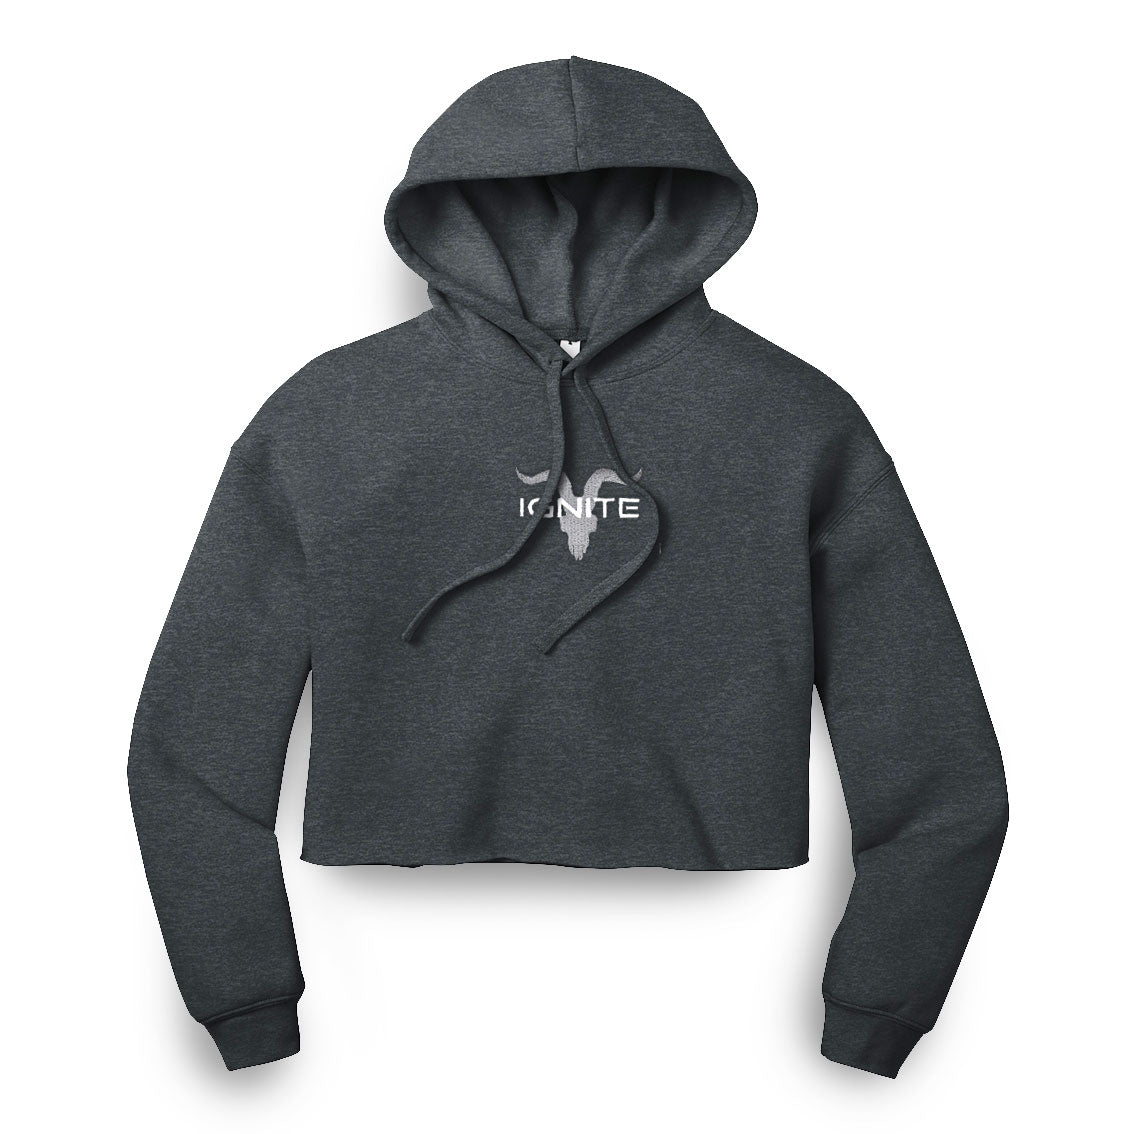 Ladies Dark Heather Grey Cropped Hoodie - ignite-merch